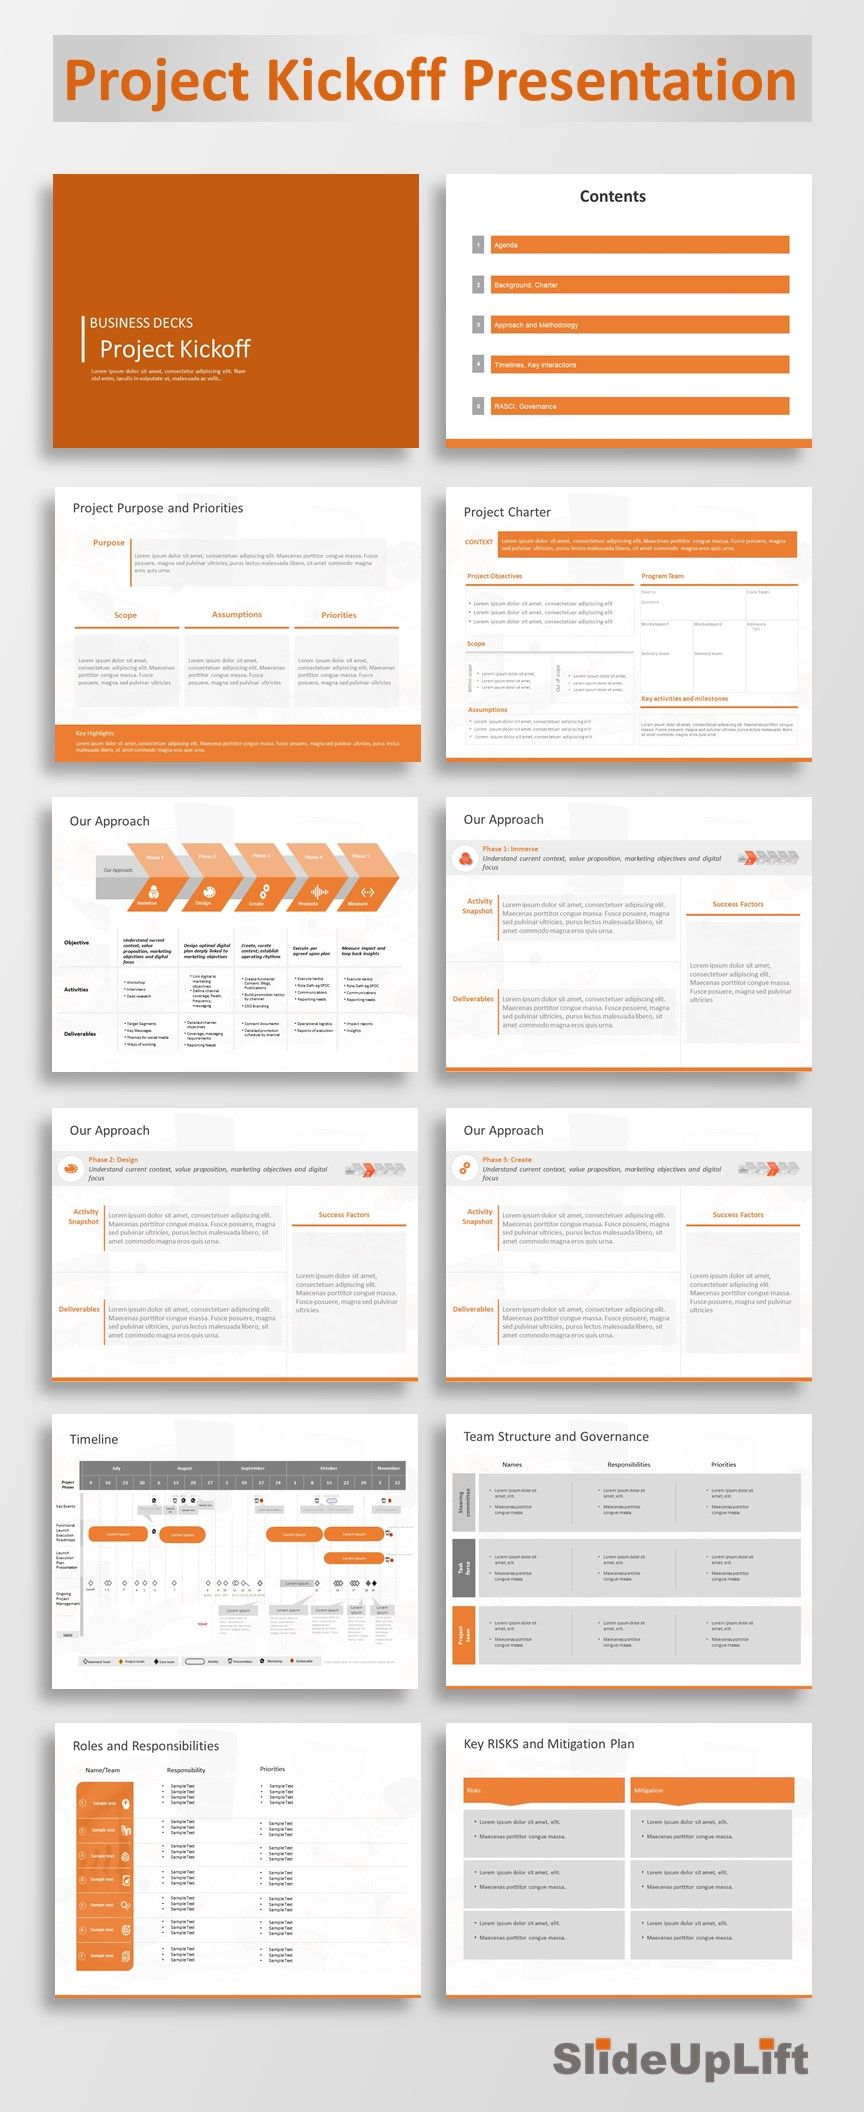 Project Kickoff Presentation Kickoff Meeting Ppt Template Project Management Templates Project Planning Template Project Management Dashboard Project kickoff meeting template ppt